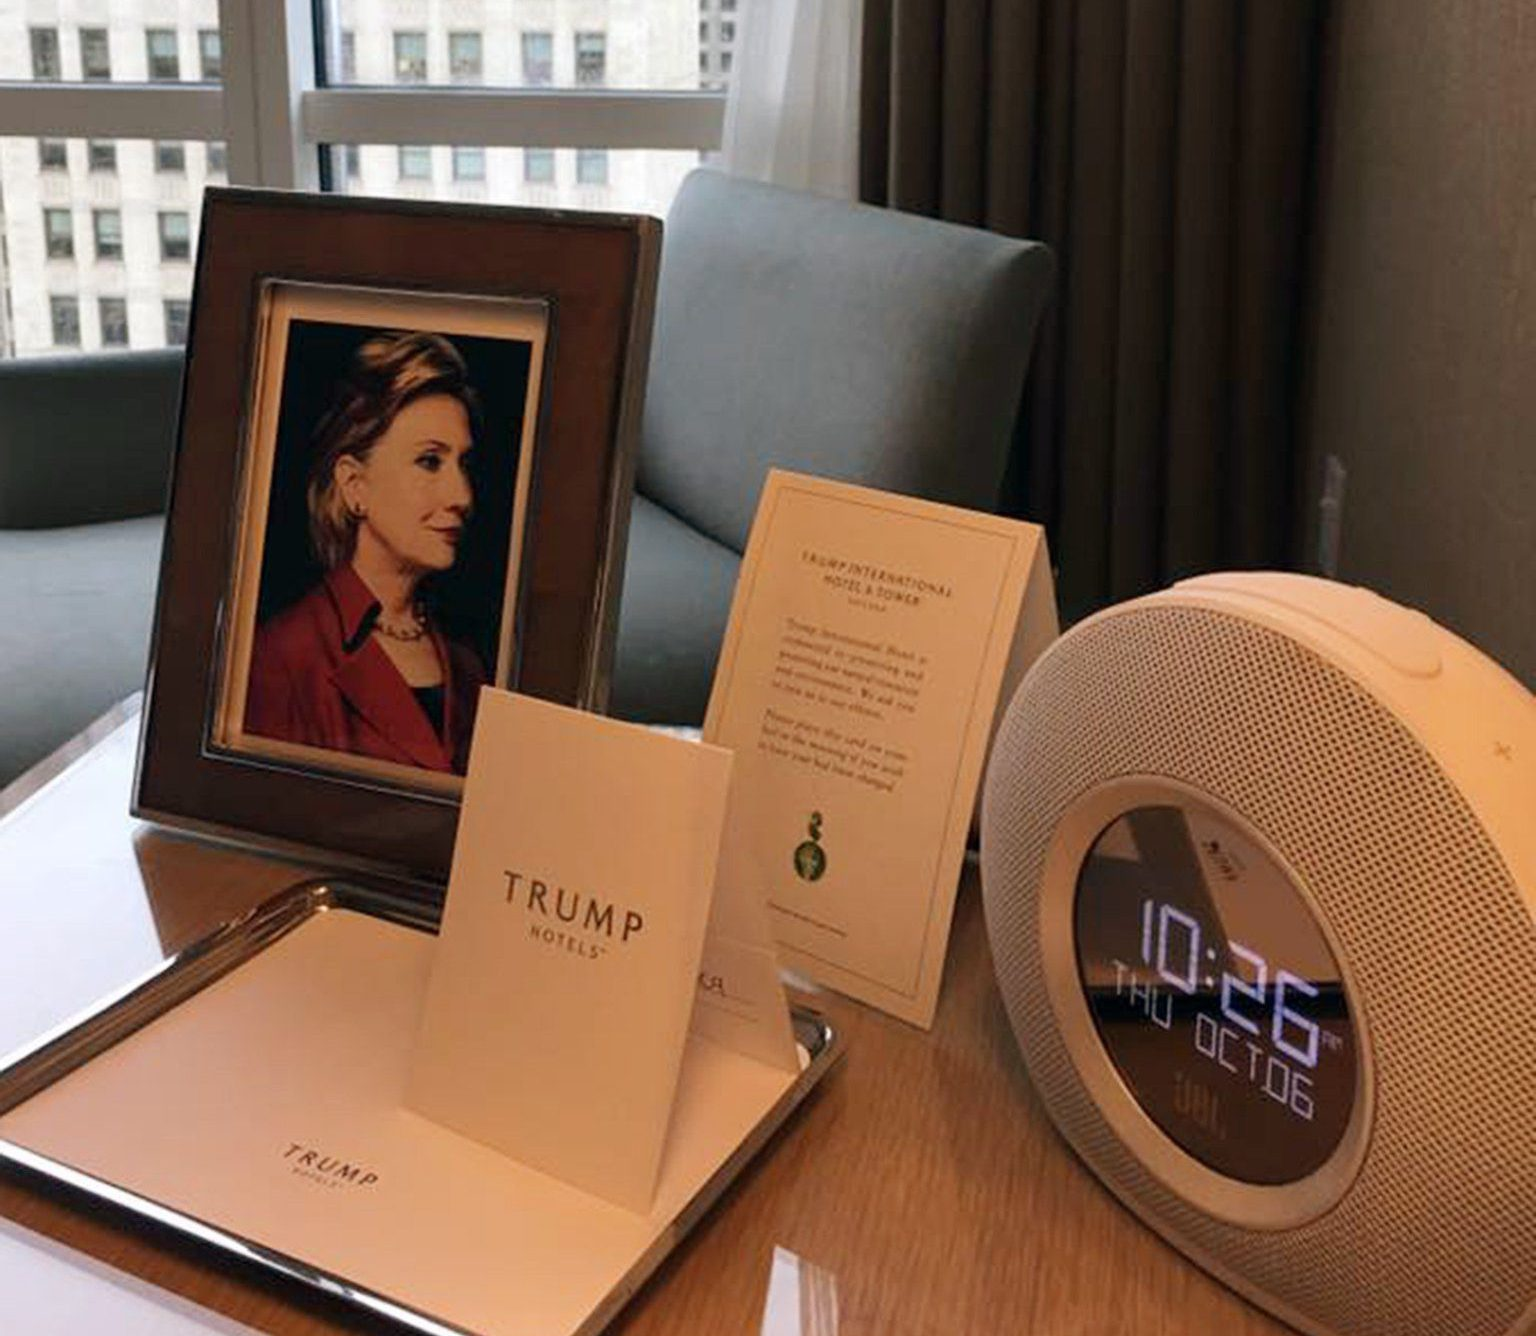 Man requests framed photo of Clinton at Trump hotel – they deliver big time